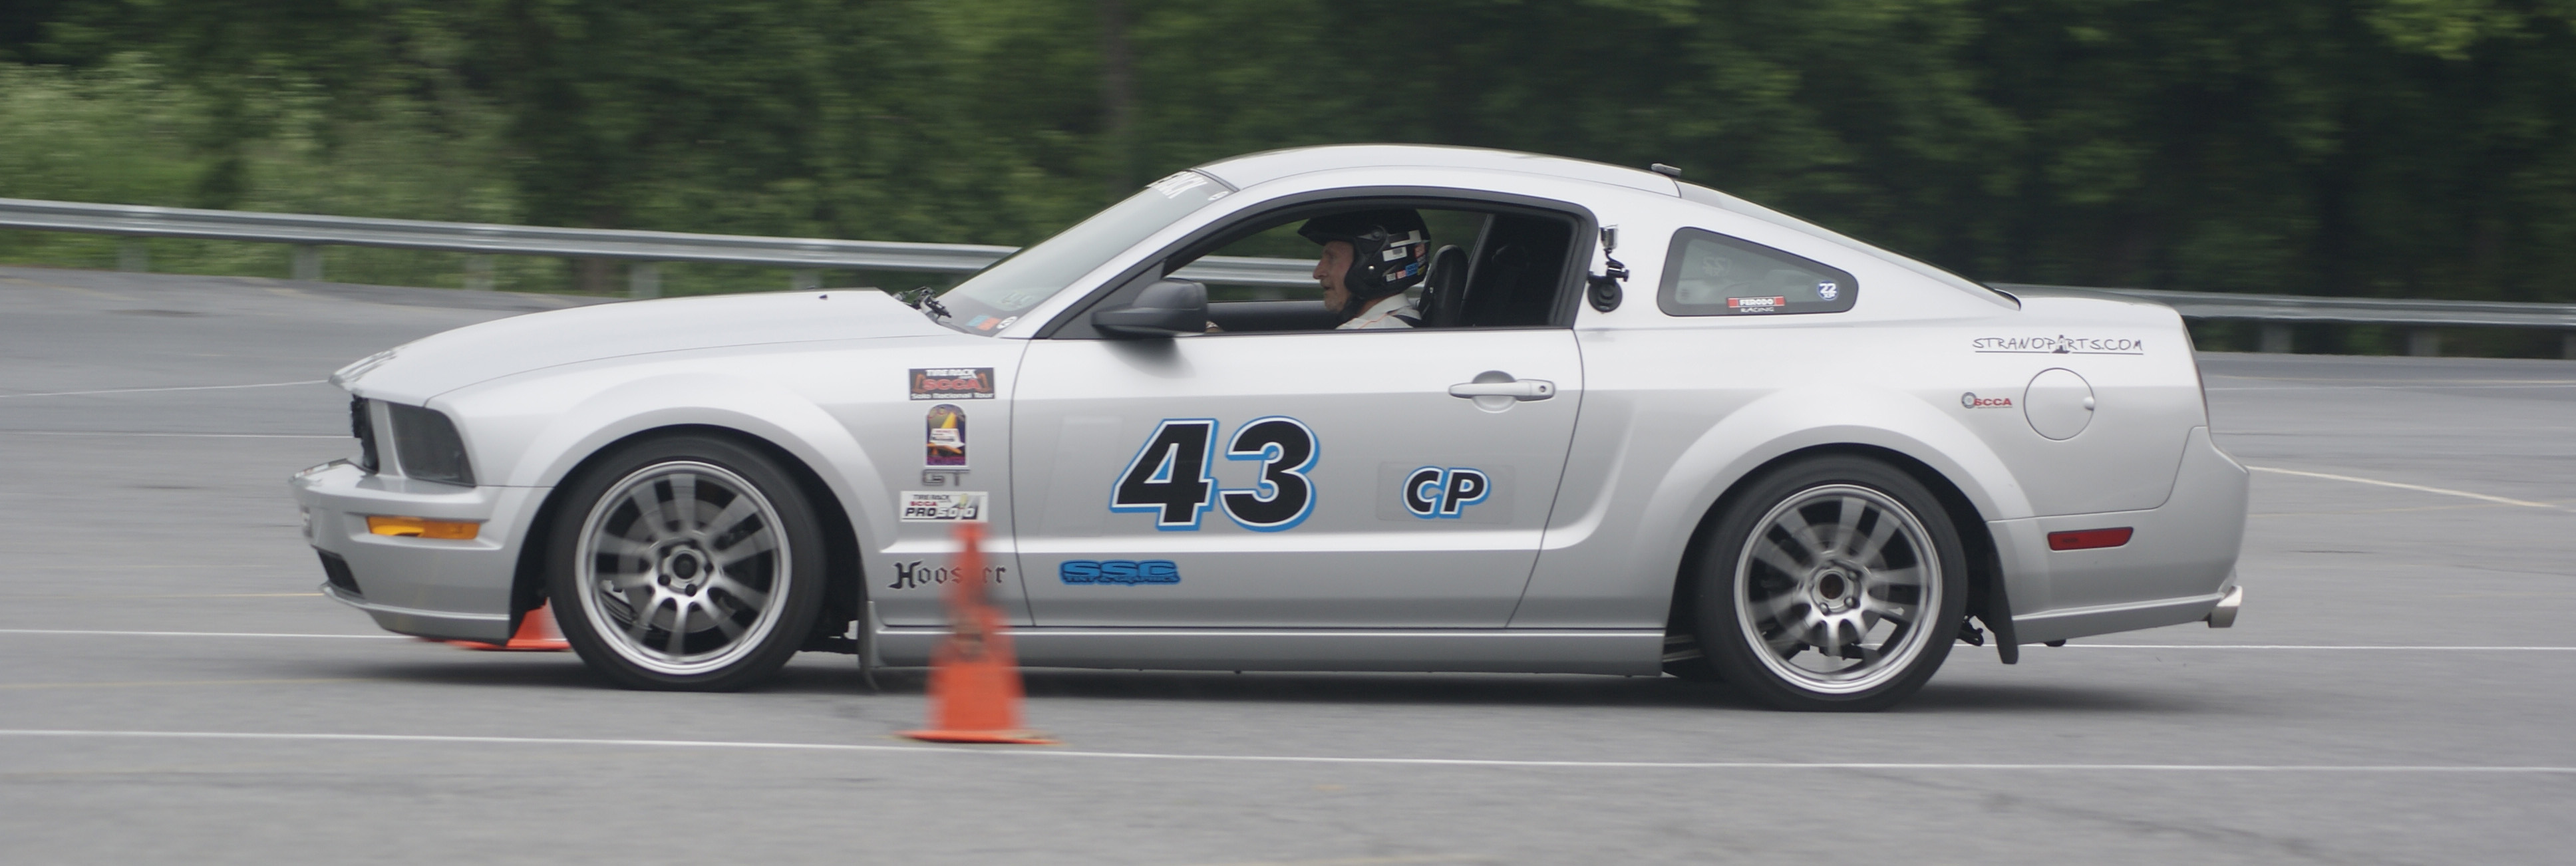 <p>Name: Dennis Latshaw From: Hanover, PA Runs: AutoCross Drives: 2006 Ford Mustang in CP Class MemberSince: 2008 Dennis and Derek Latshaw run the Susquehanna SCCA Novice Program. We couldn't ask for anyone better to lead the novice charge than these two men. When asked to be the member spotlight Dennis [&hellip;]</p>